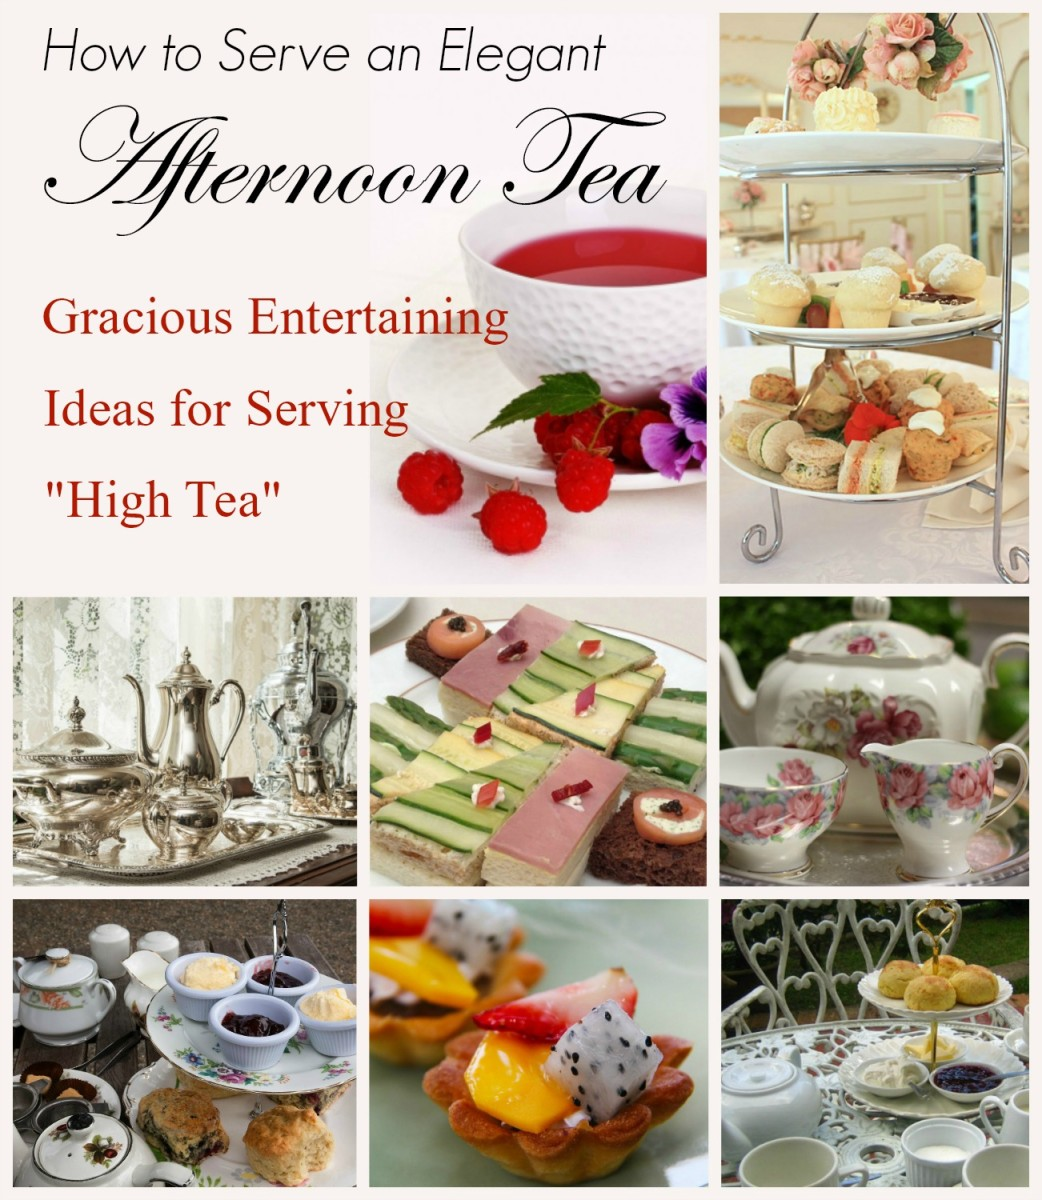 bf11d3c32039 Learn how to host a gracious casual or formal afternoon tea service with  these elegant entertaining